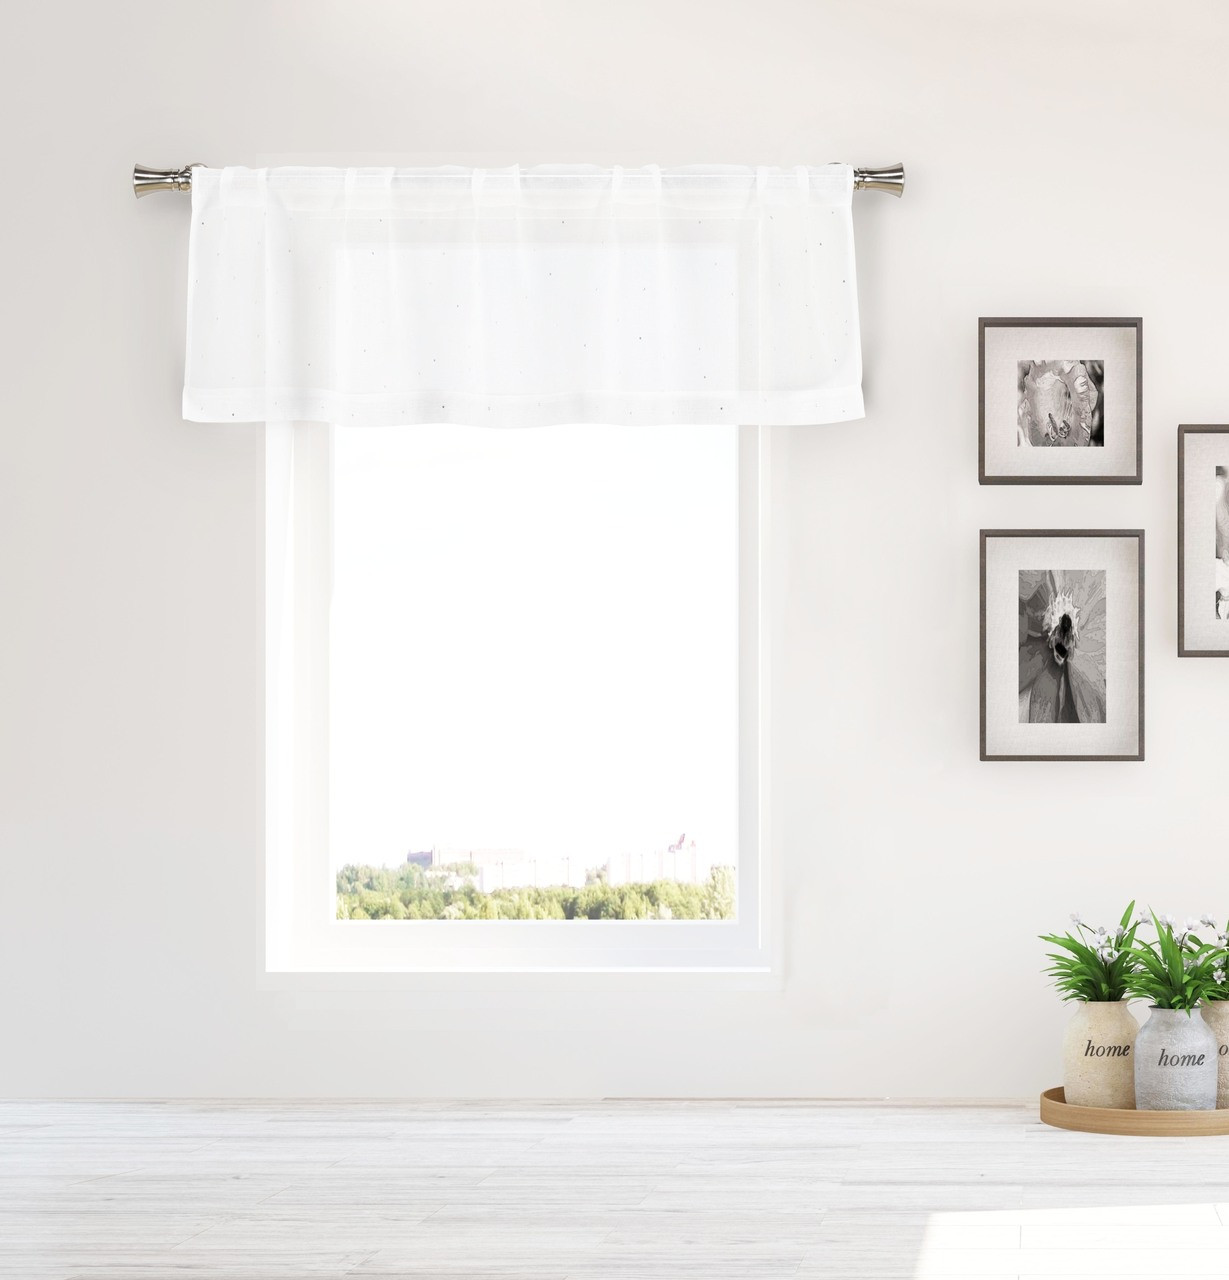 Bathroom And More Collection Pure White Sheer Window Curtain Valance With Crystal Rhinestones Design Single 1 Valance 55in W X 16in L My Infinity Store